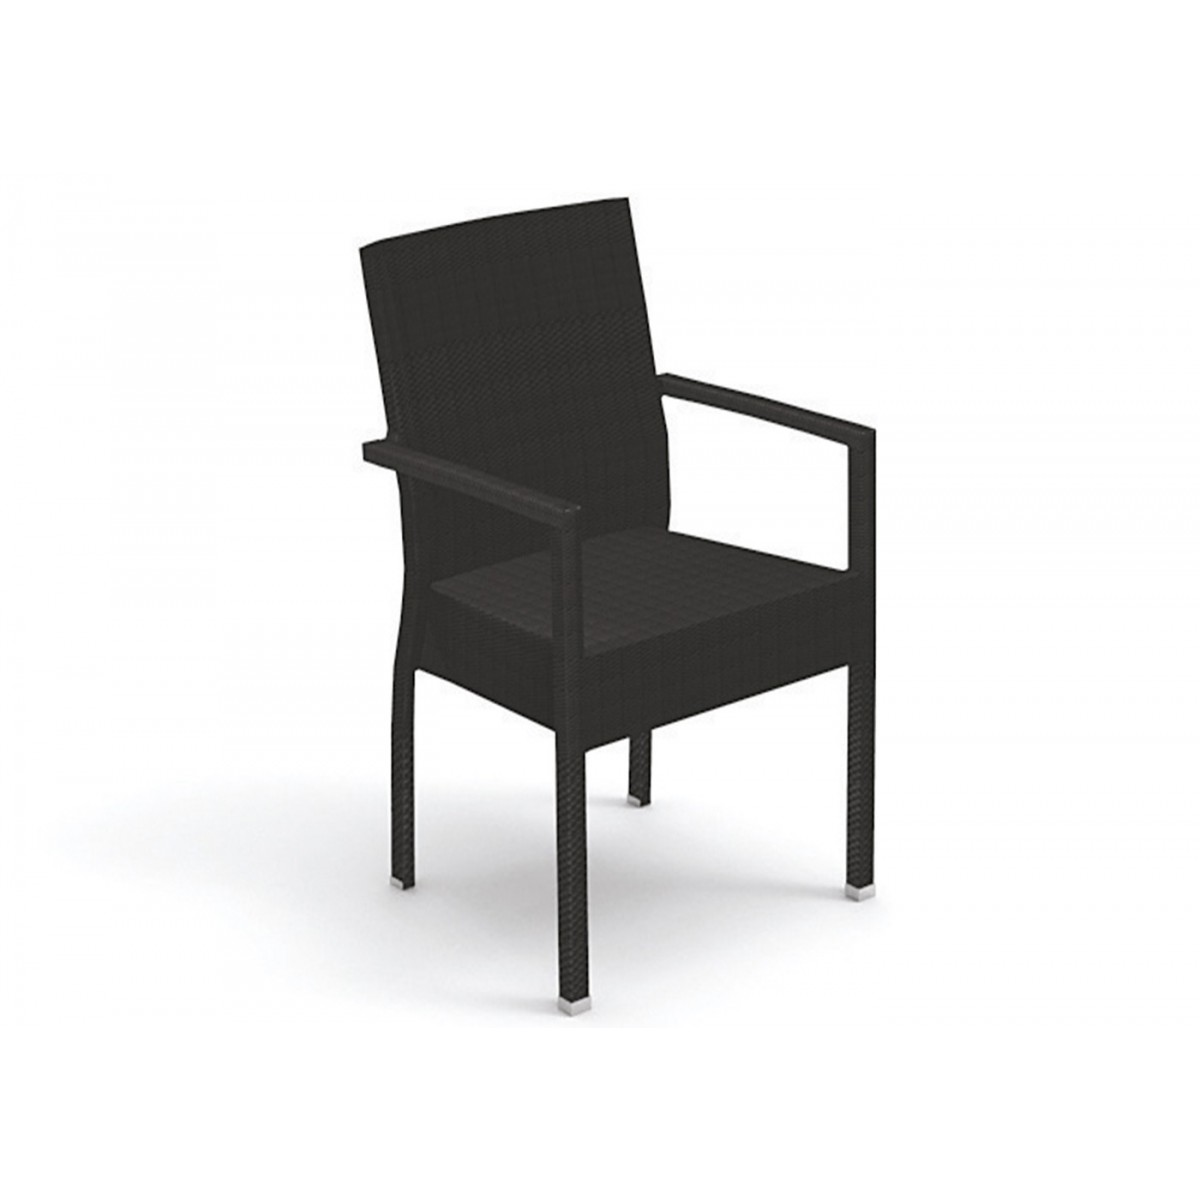 fauteuil de jardin en wicker blanc ou brun ibiza talenti. Black Bedroom Furniture Sets. Home Design Ideas